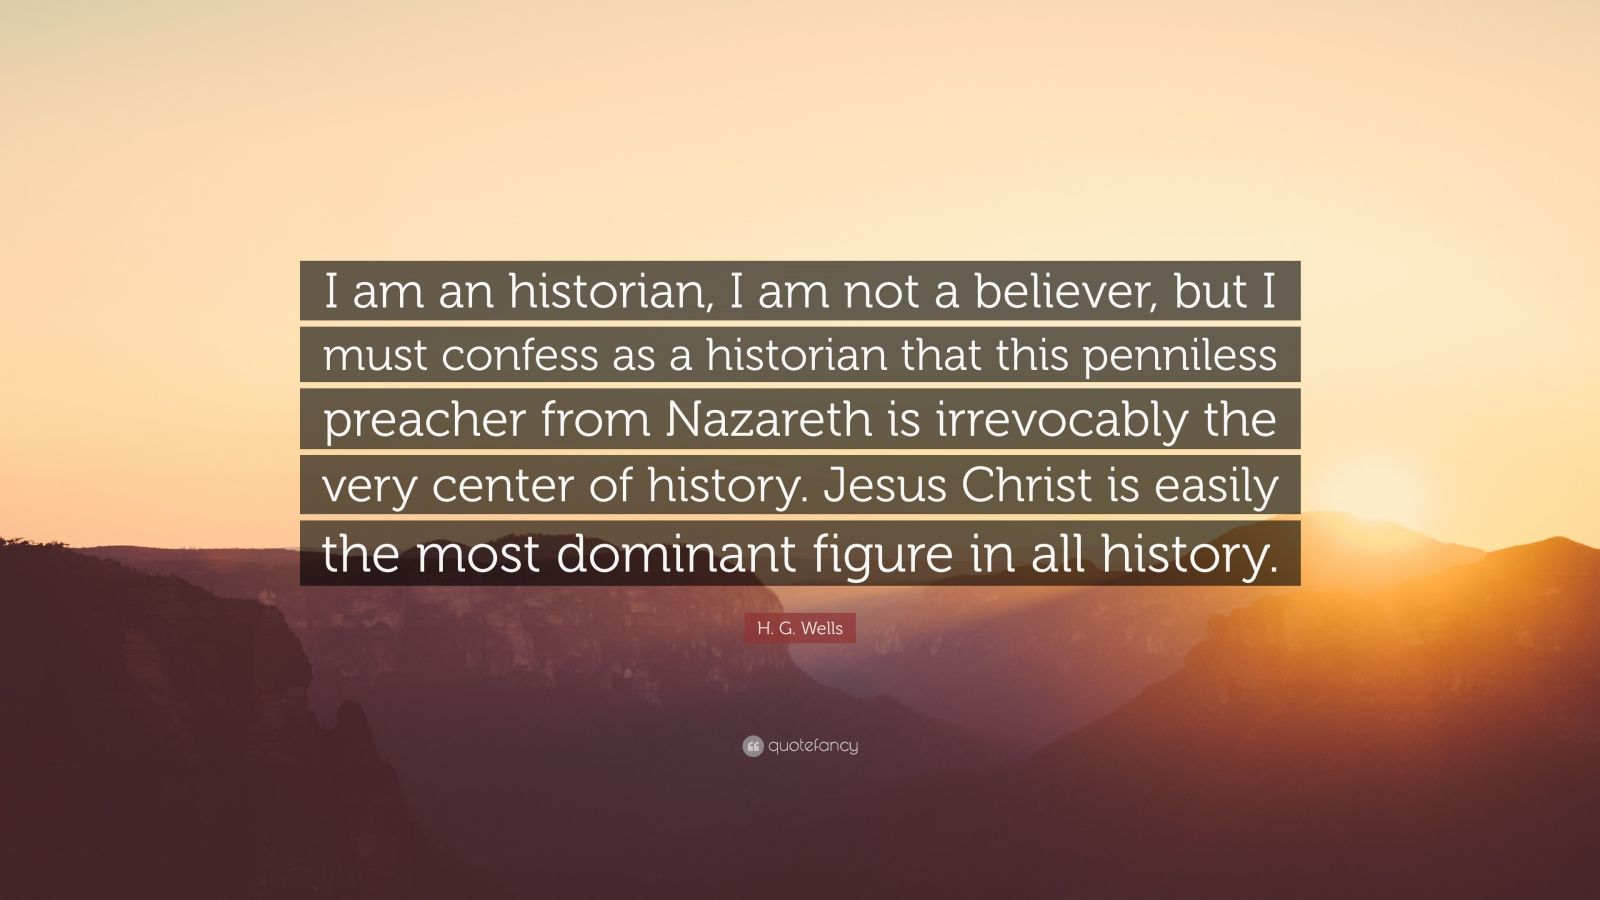 "H. G. Wells Quote: ""I am an historian, I am not a believer, but I must confess as a historian that this penniless preacher from Nazareth is irrevocably the very center of history. Jesus Christ is easily the most dominant figure in all history."""